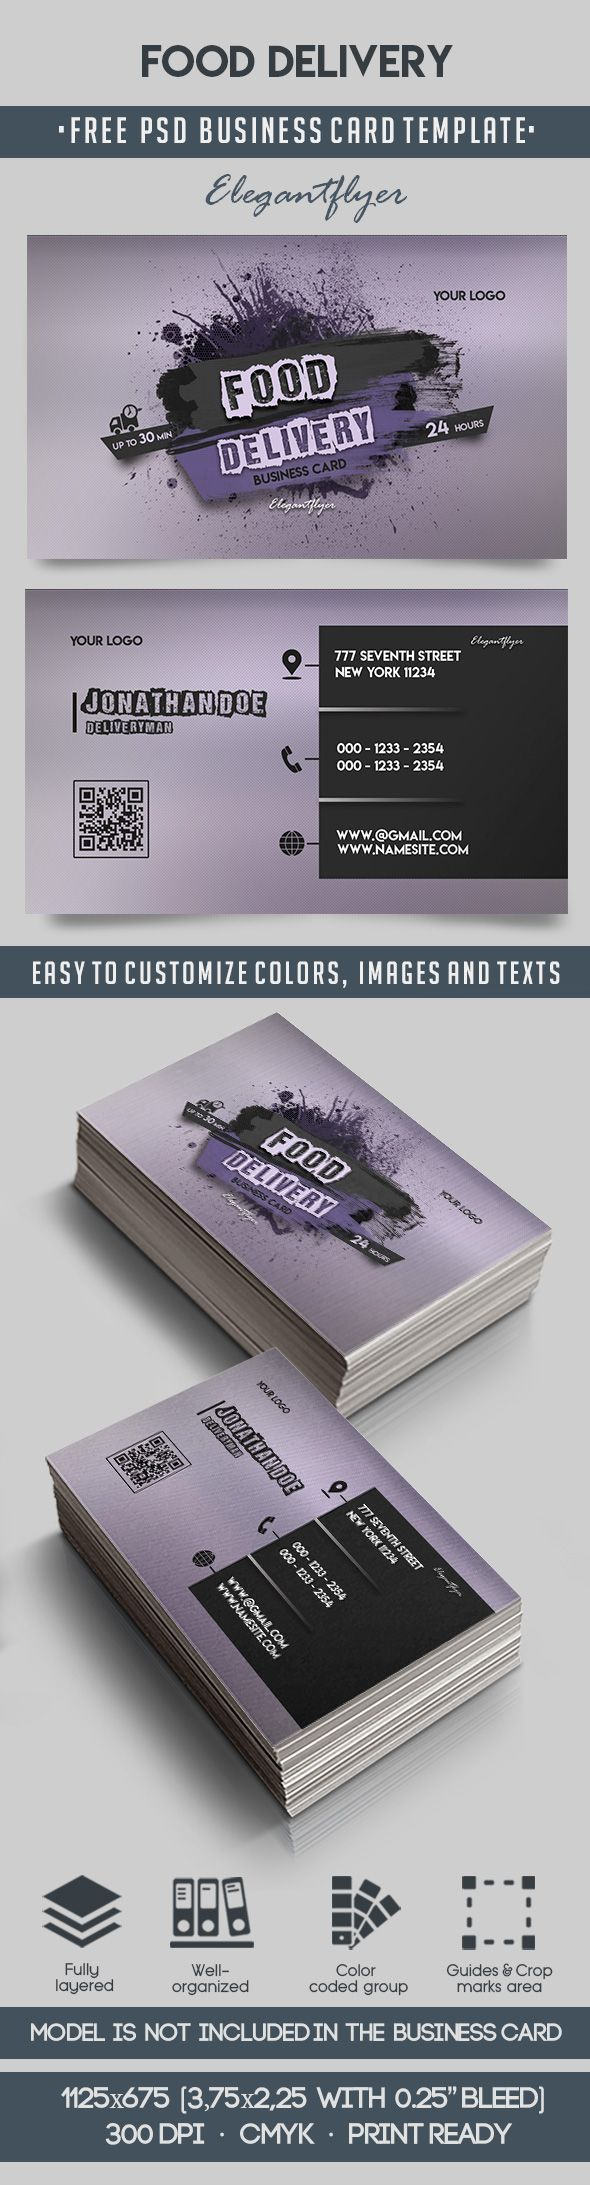 Best 25+ Free business card templates ideas on Pinterest | Free ...